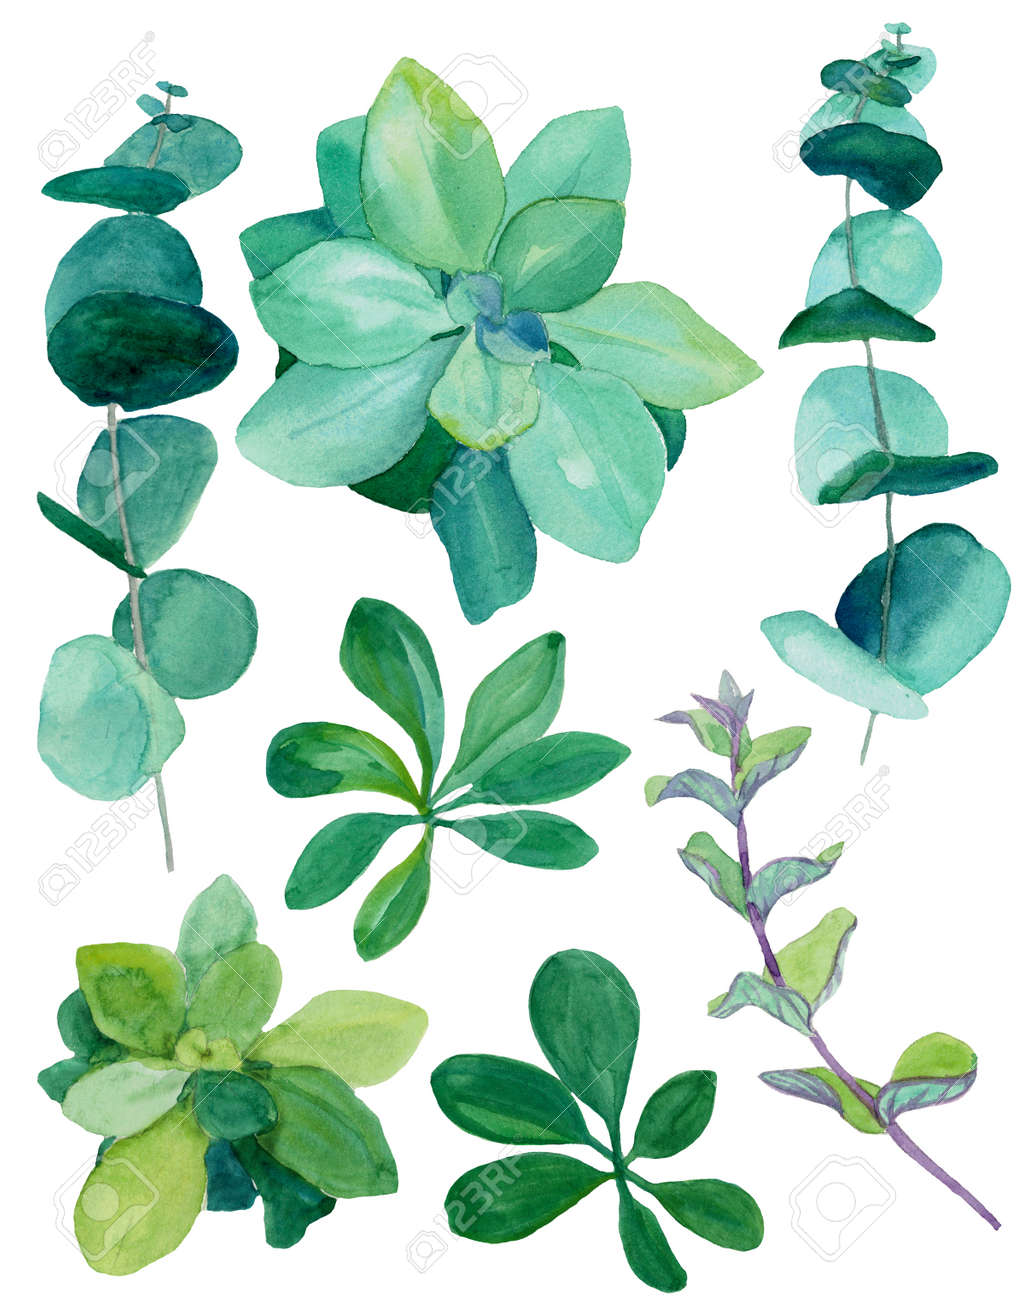 Watercolor Botanical Green Decor Set Baby Blue Eucalyptus Decorative Stock Photo Picture And Royalty Free Image Image 138888083